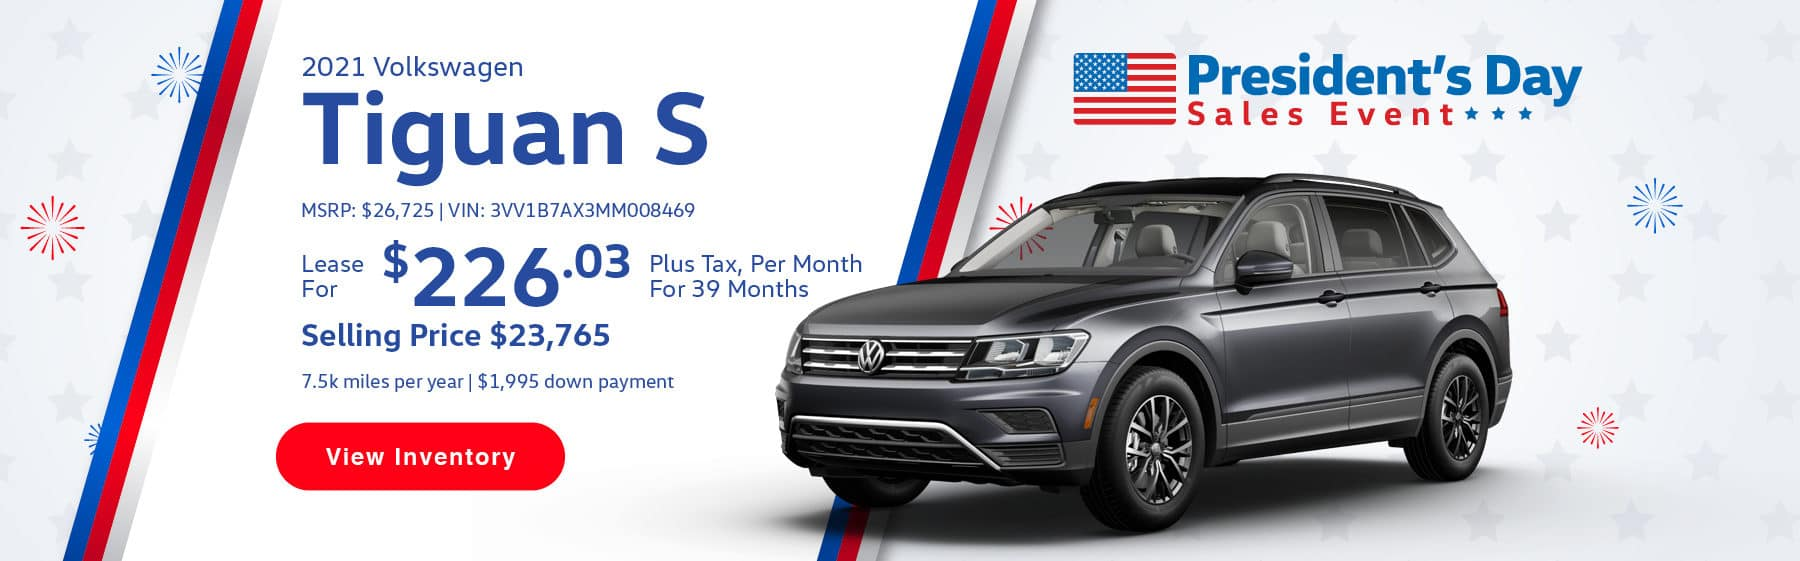 Lease the 2021 Tiguan S for $226.03 per month, plus tax for 39 months. Selling price is $23,765. 7,500 miles per year. $1,995 down payment. $26,725 MSRP. Vin #: 3VV1B7AX3MM008469.